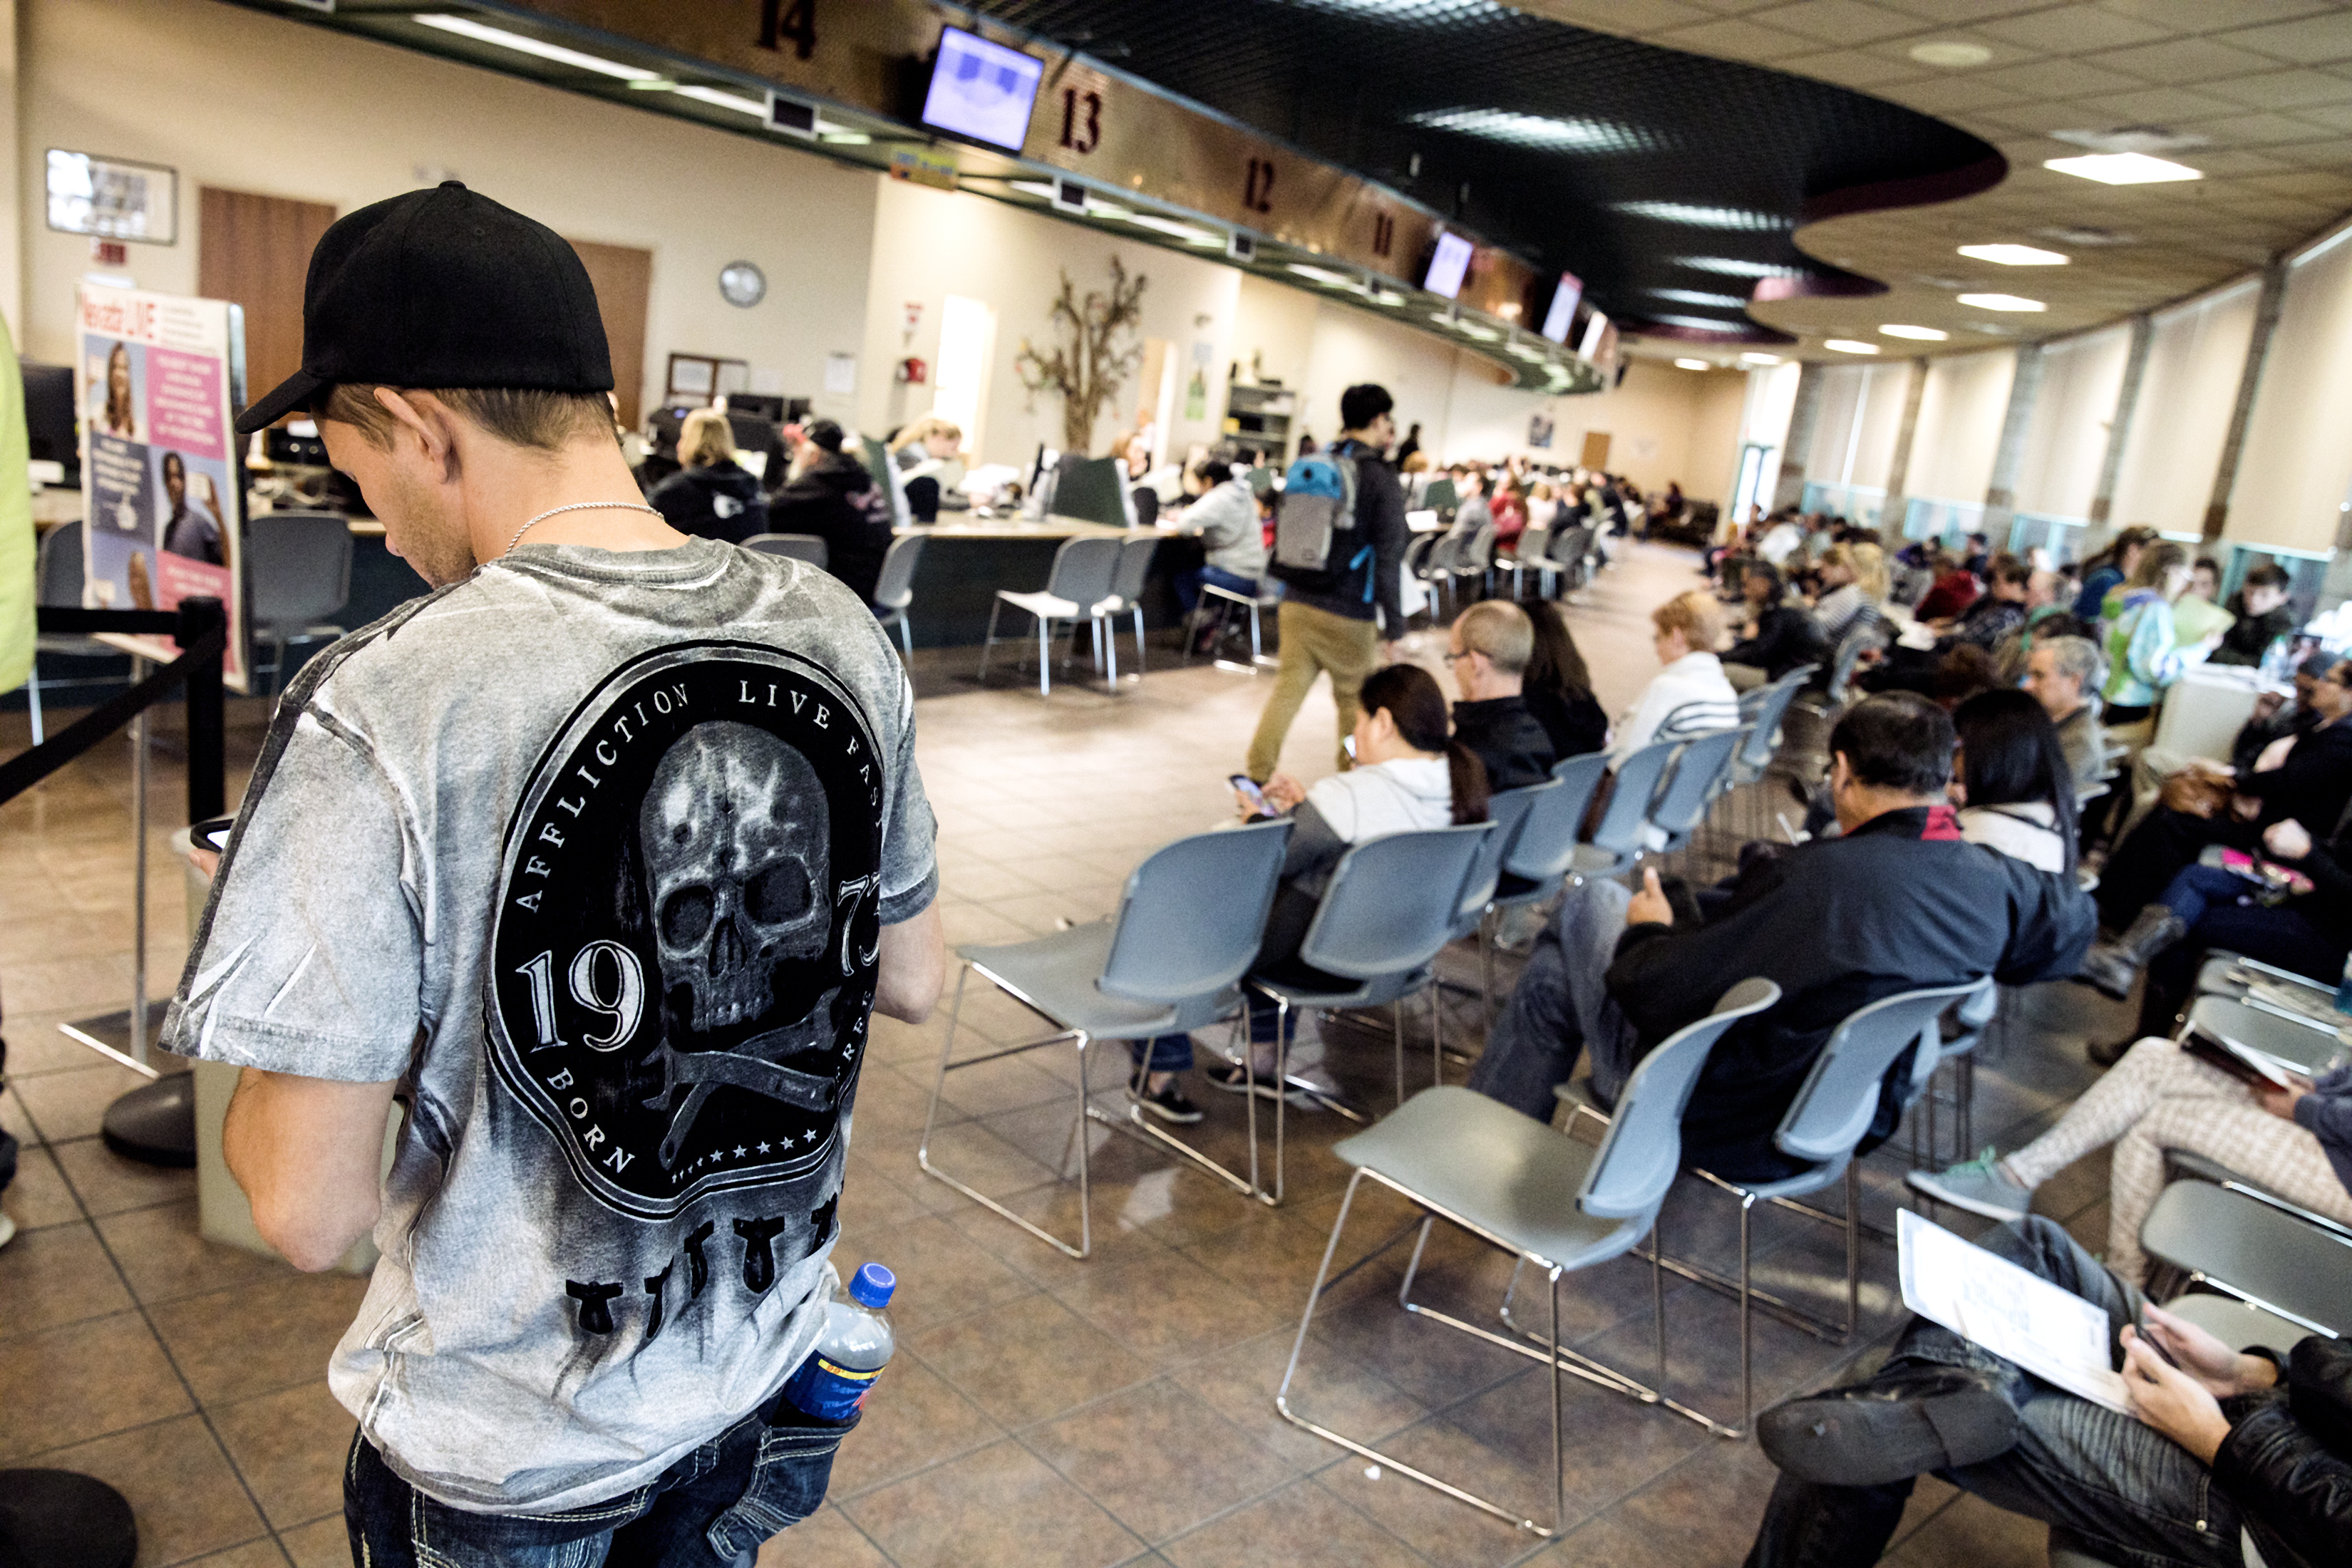 People wait at the DMV office in Henderson on Tuesday, Jan. 2, 2018